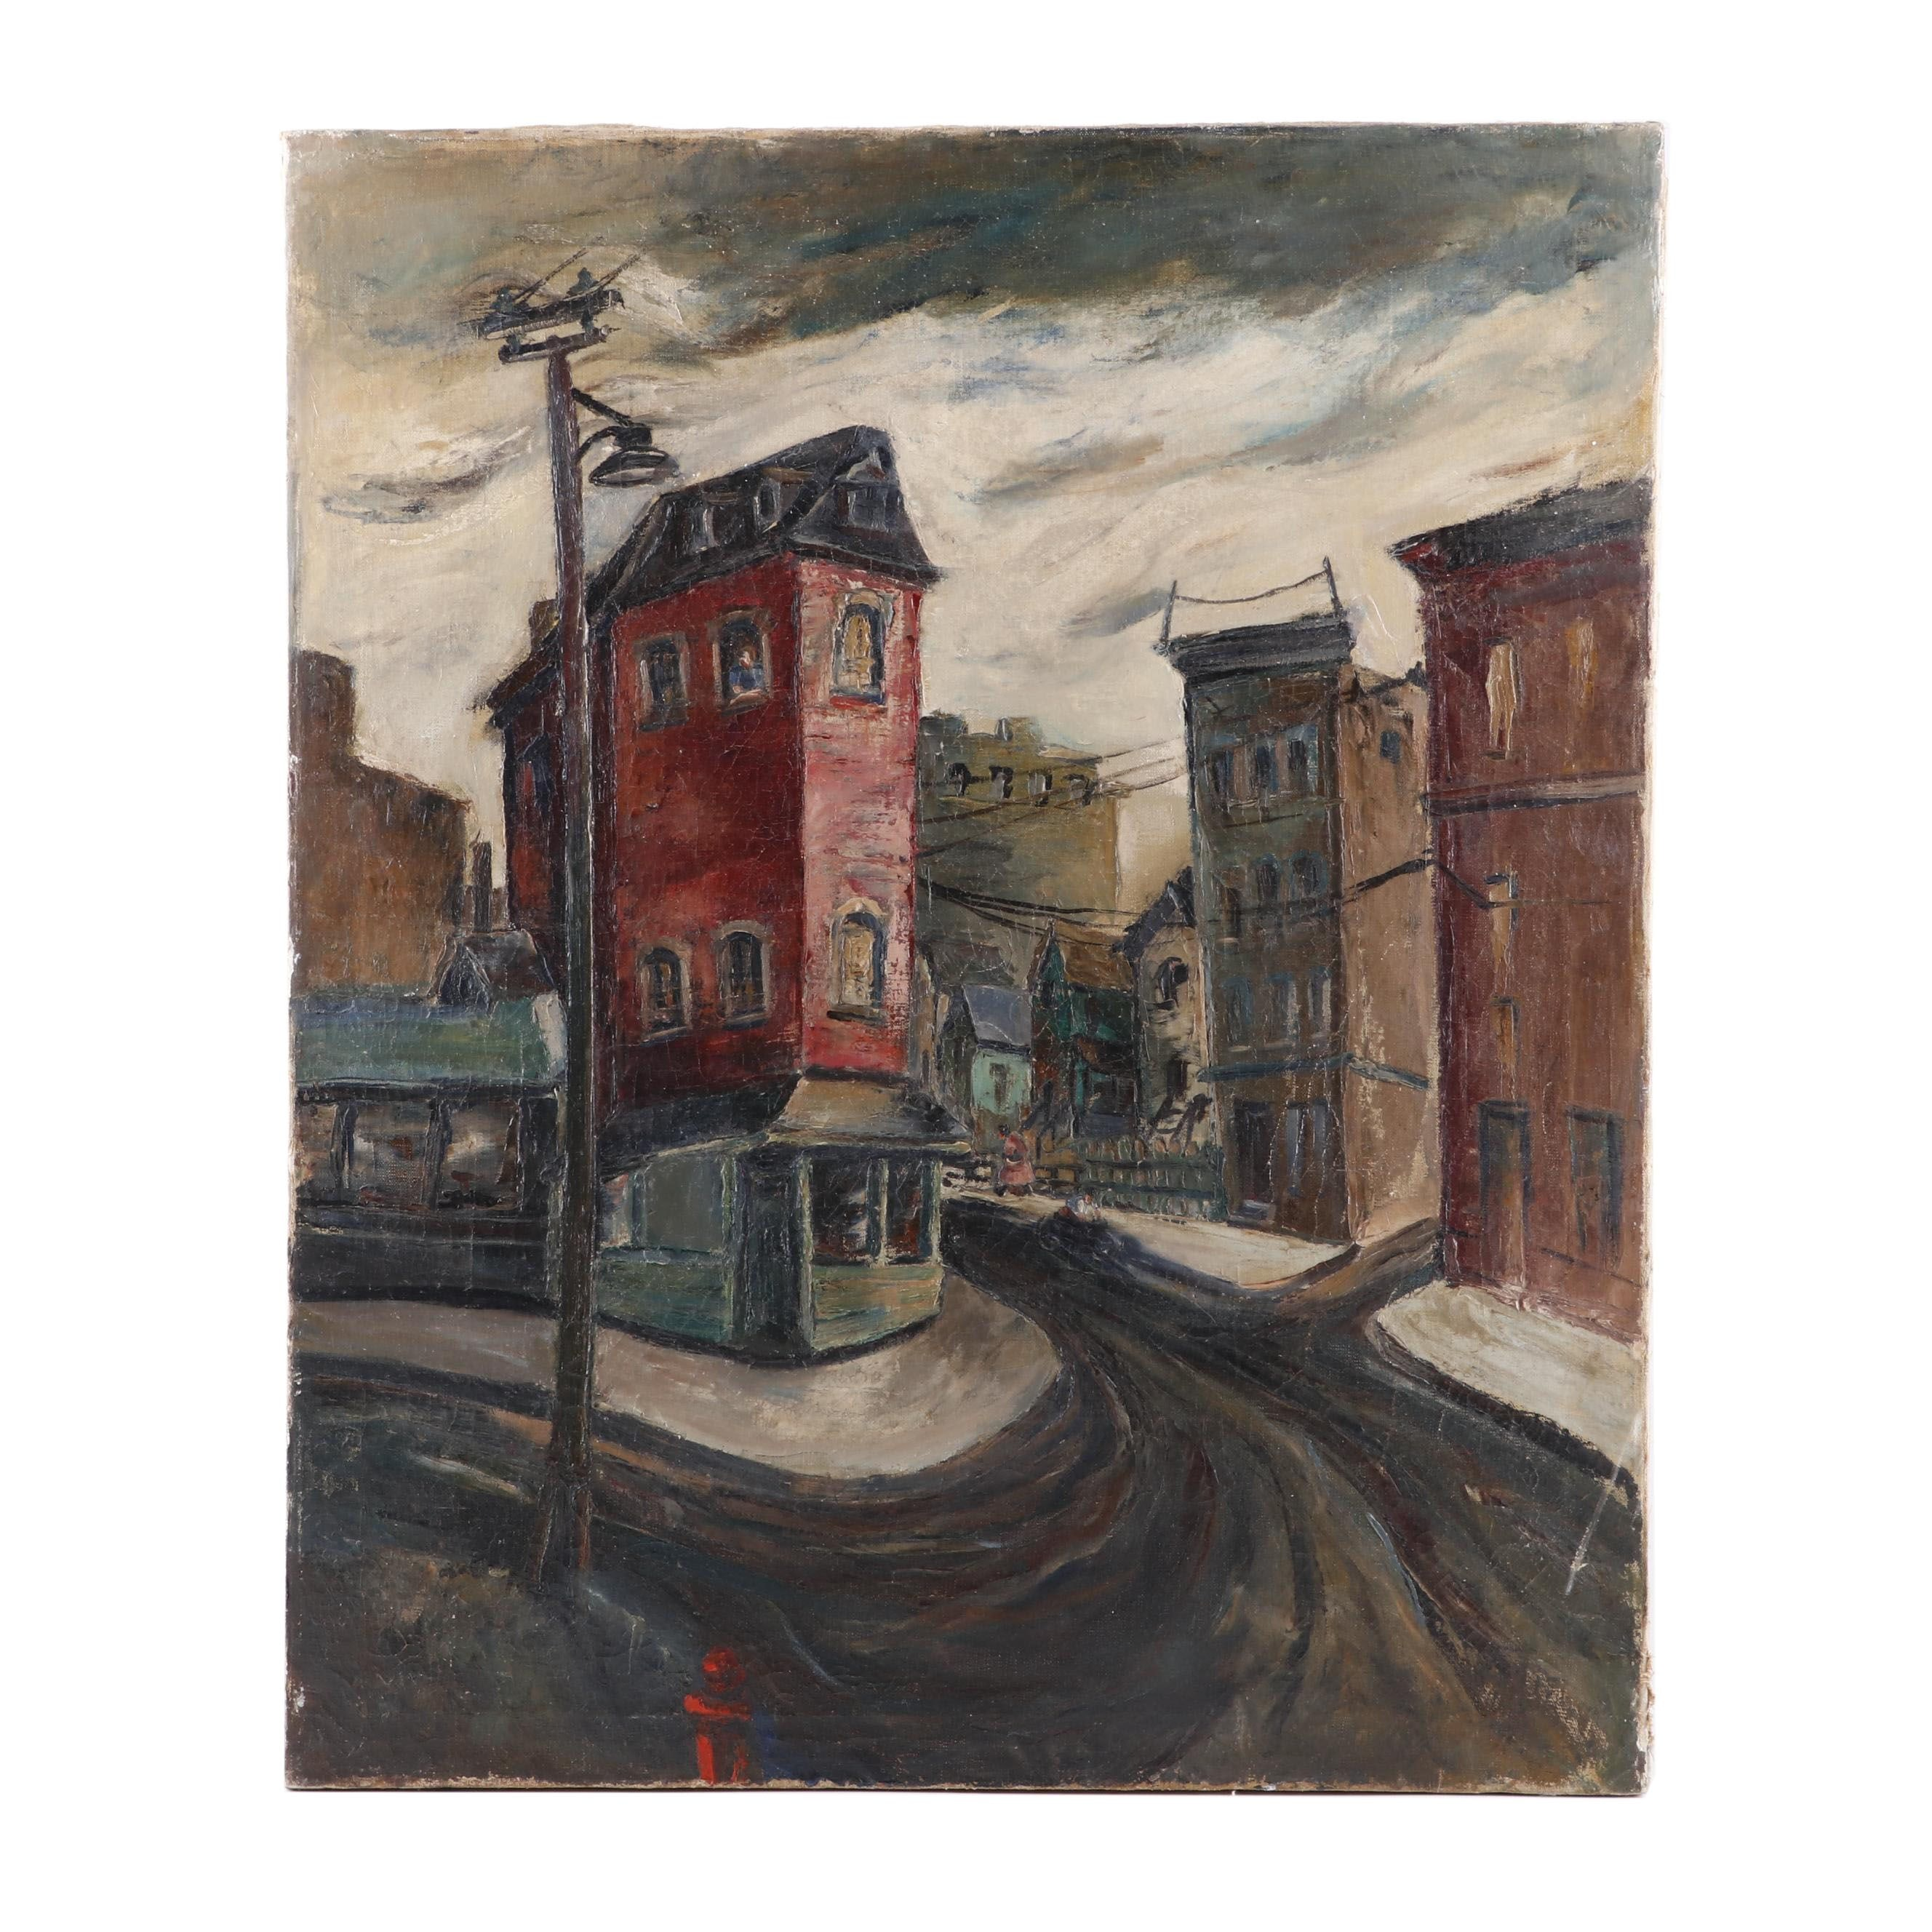 Oil Painting of a Street Scene